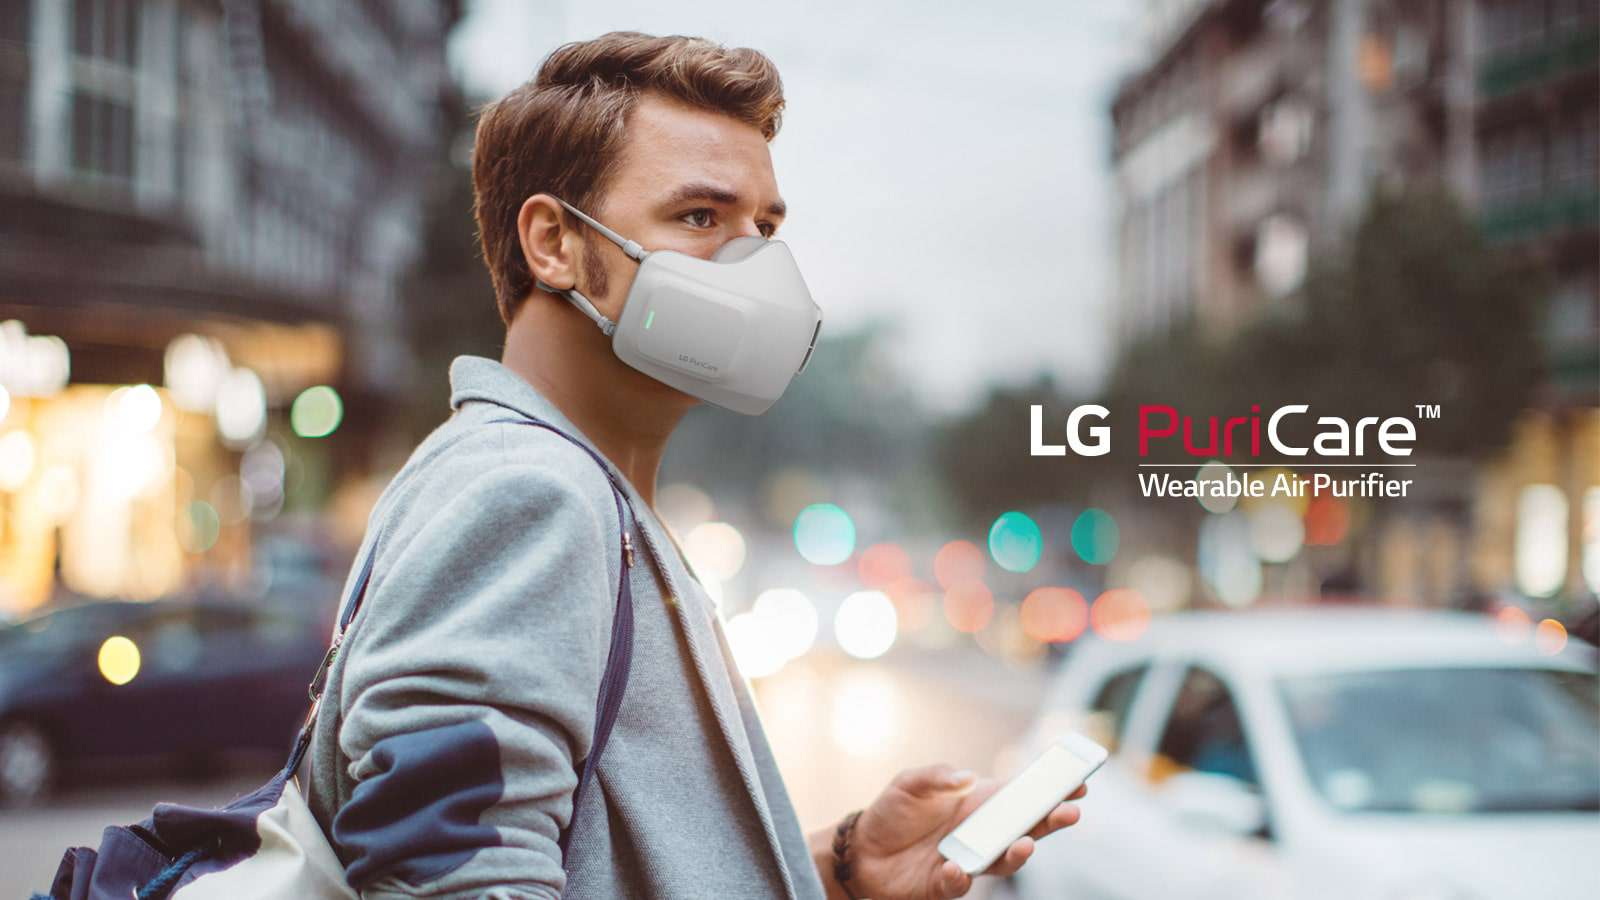 Man wearing the LG PuriCare Wearable Air Purifier